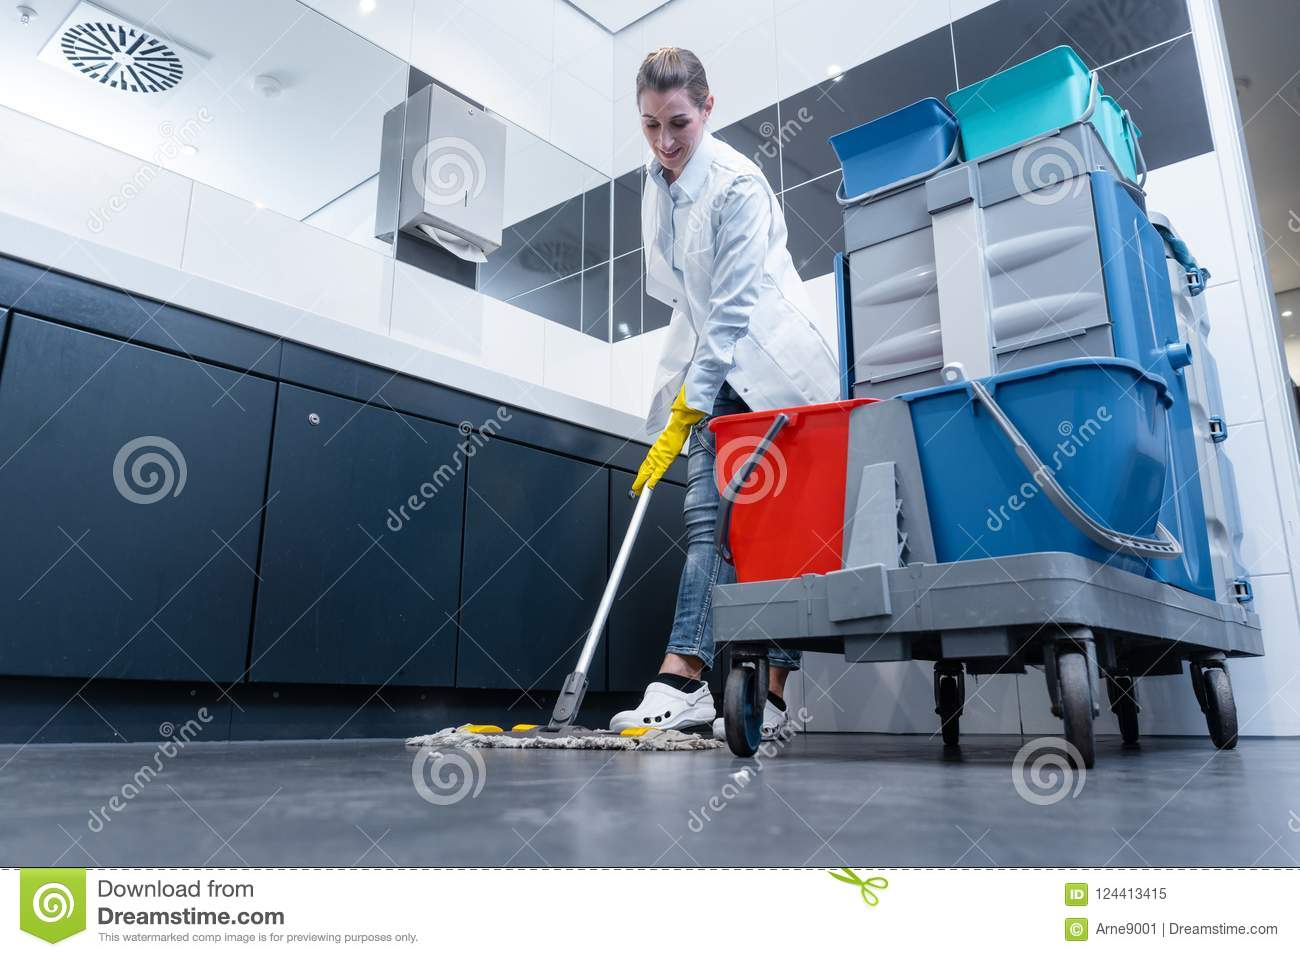 Cleaning dama mopping podłoga w toalecie